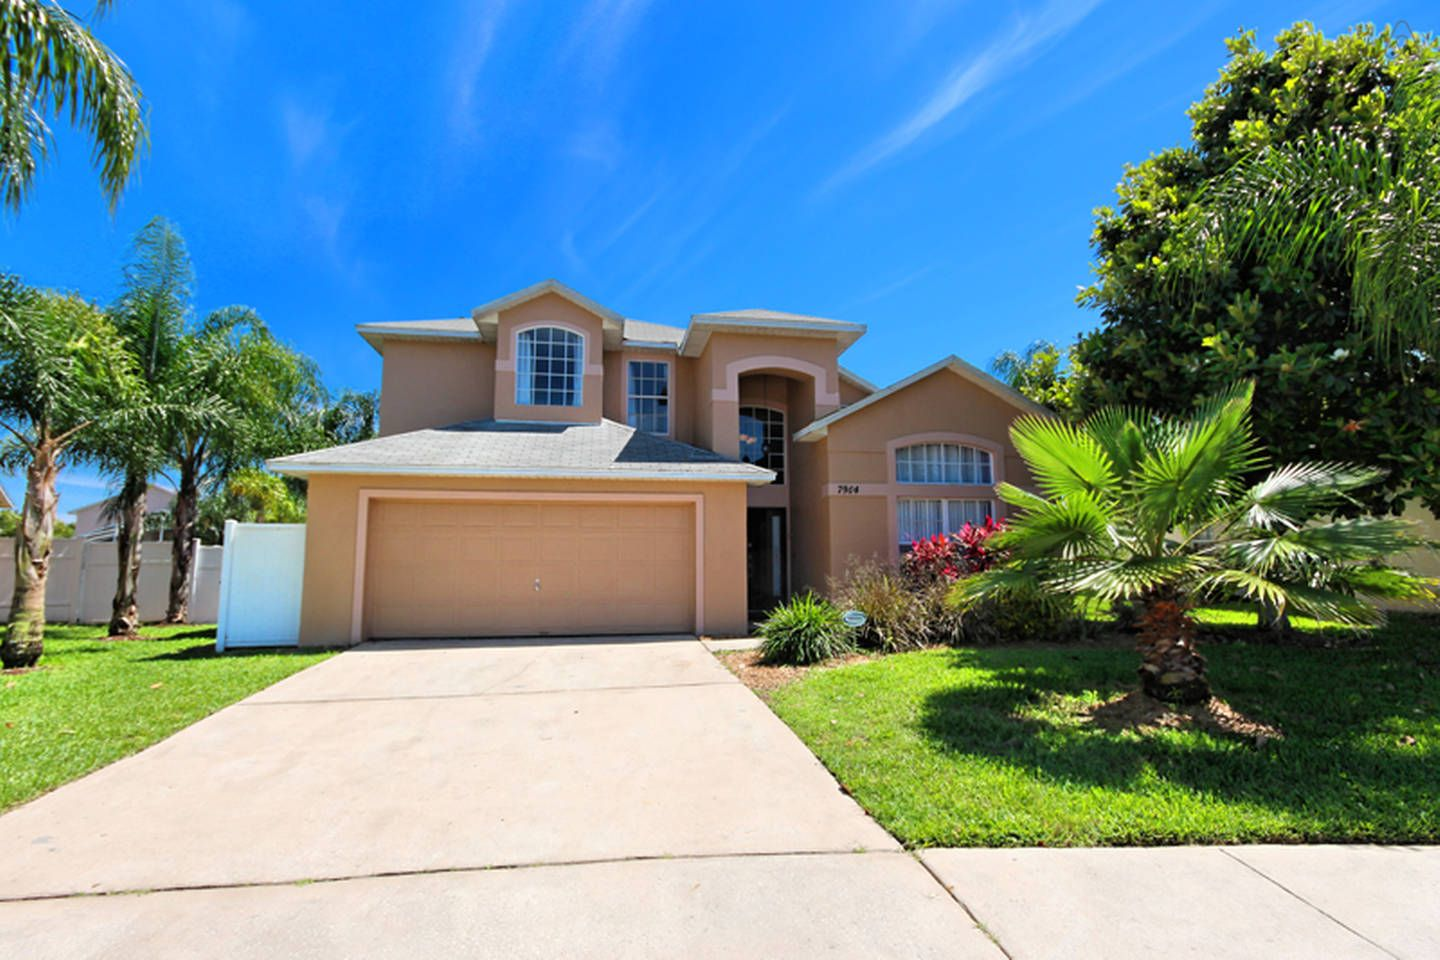 Mickey S Family Funhouse 7bed 5bath In Kissimmee Condos In Florida Florida Vacation Rentals Kissimmee